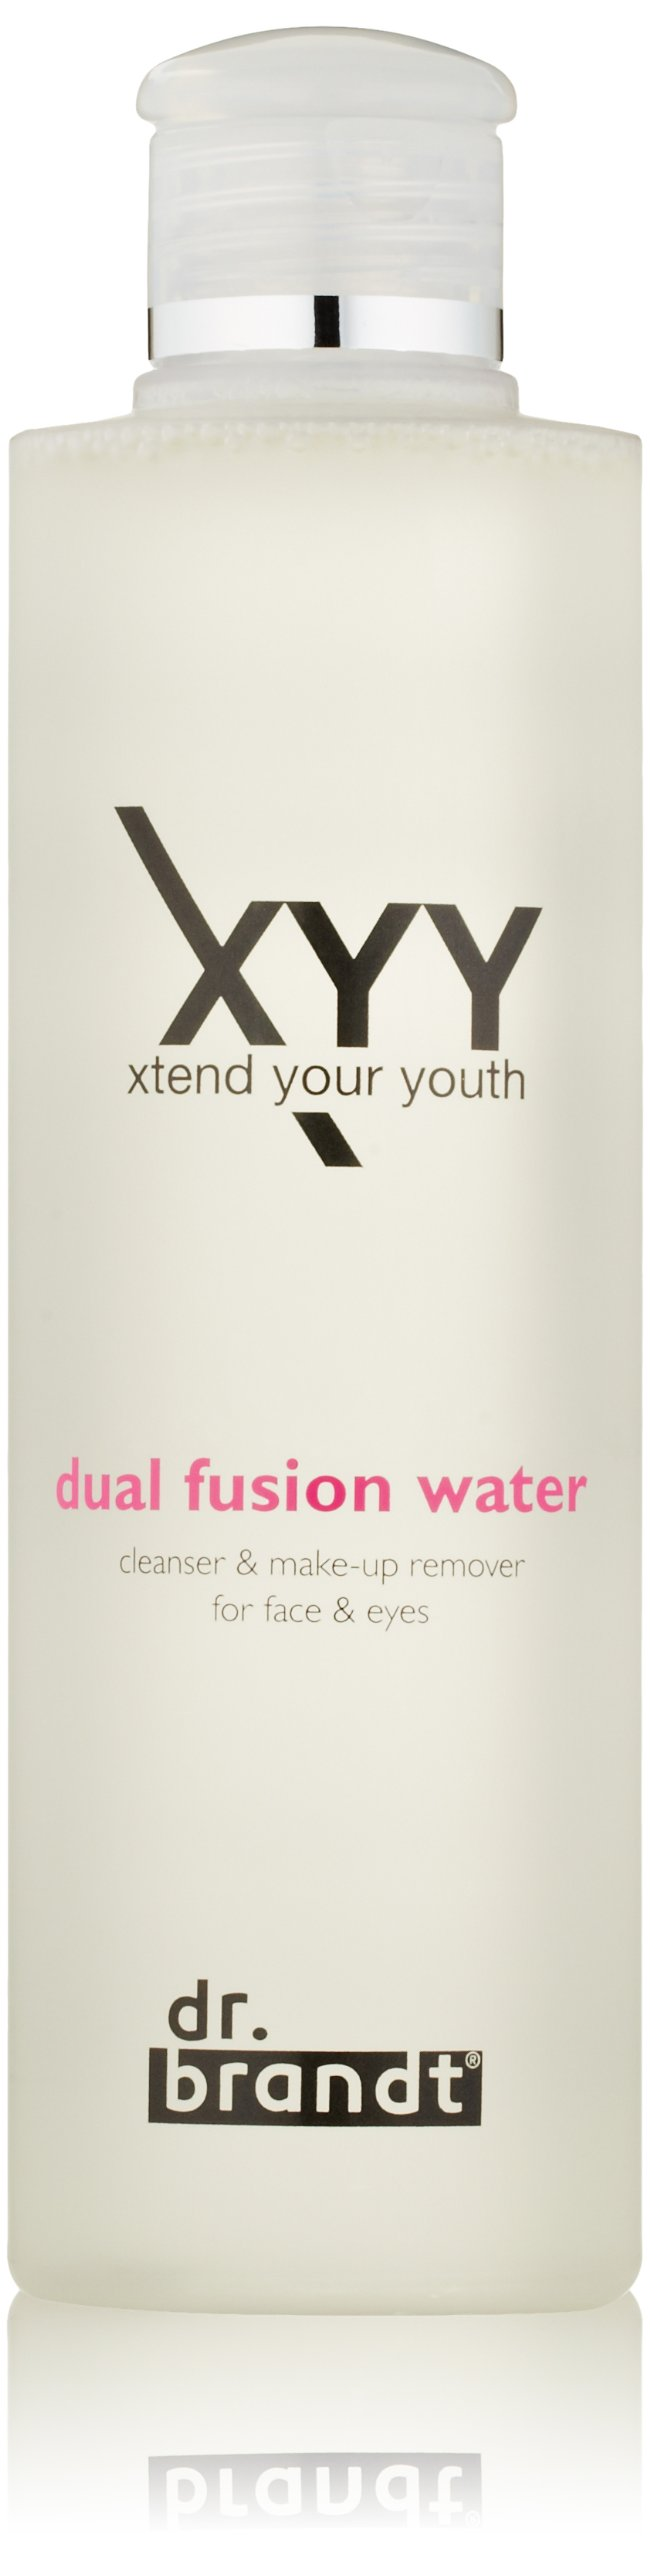 dr. brandt Xtend Your Youth Dual Fusion Water, 6.7 fl. oz.